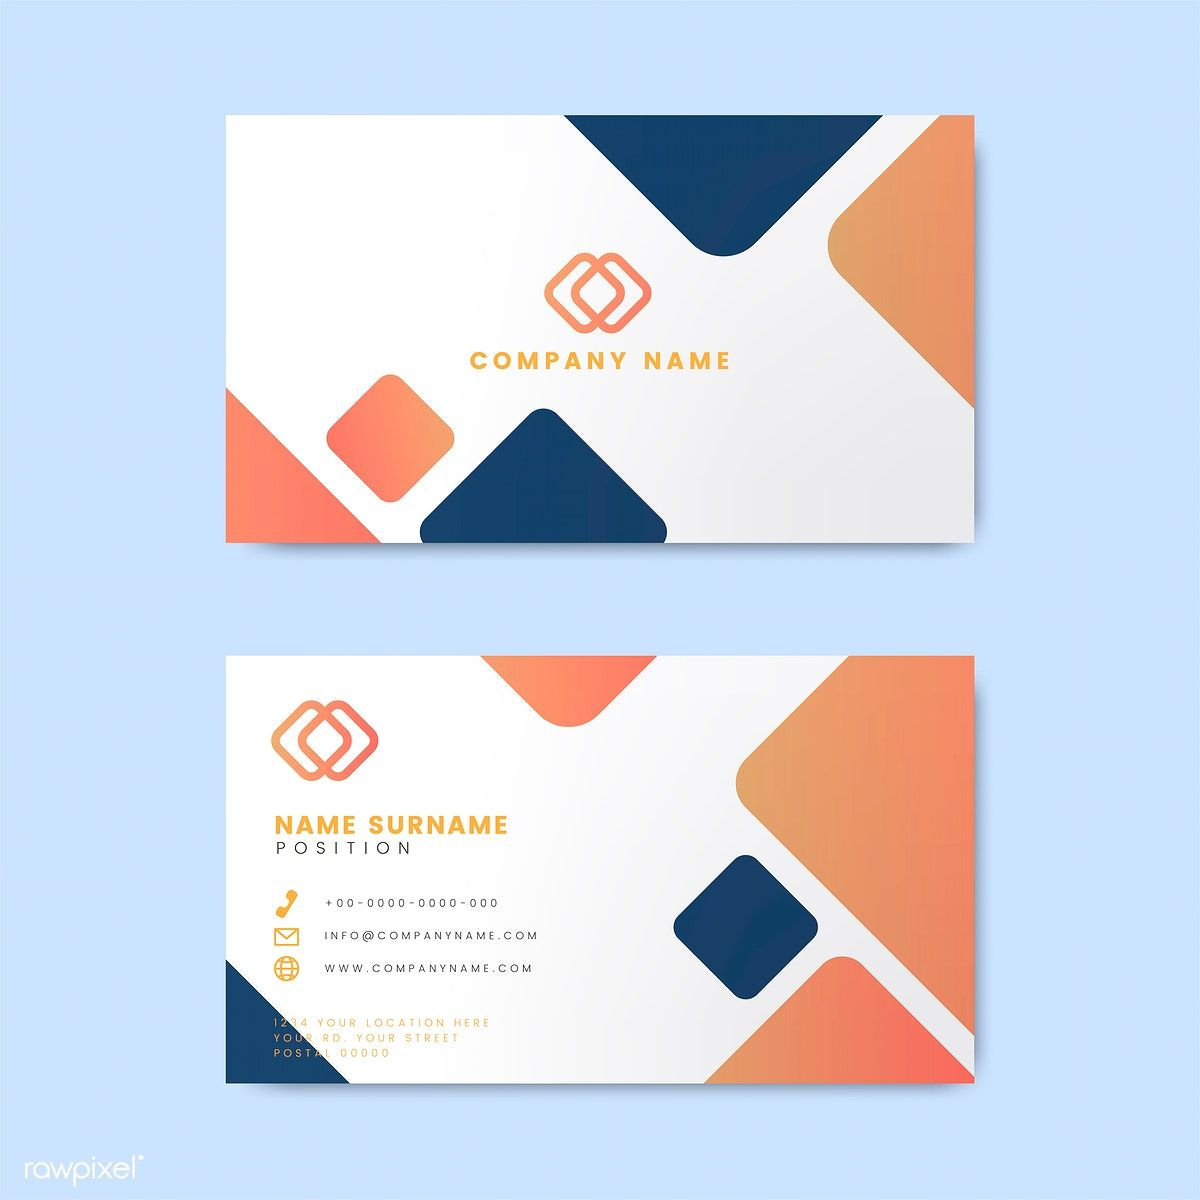 Minimal Modern Business Card Design Featuring Geometric Elements Free Image By Rawpix Business Card Design Minimal Modern Business Cards Business Card Design